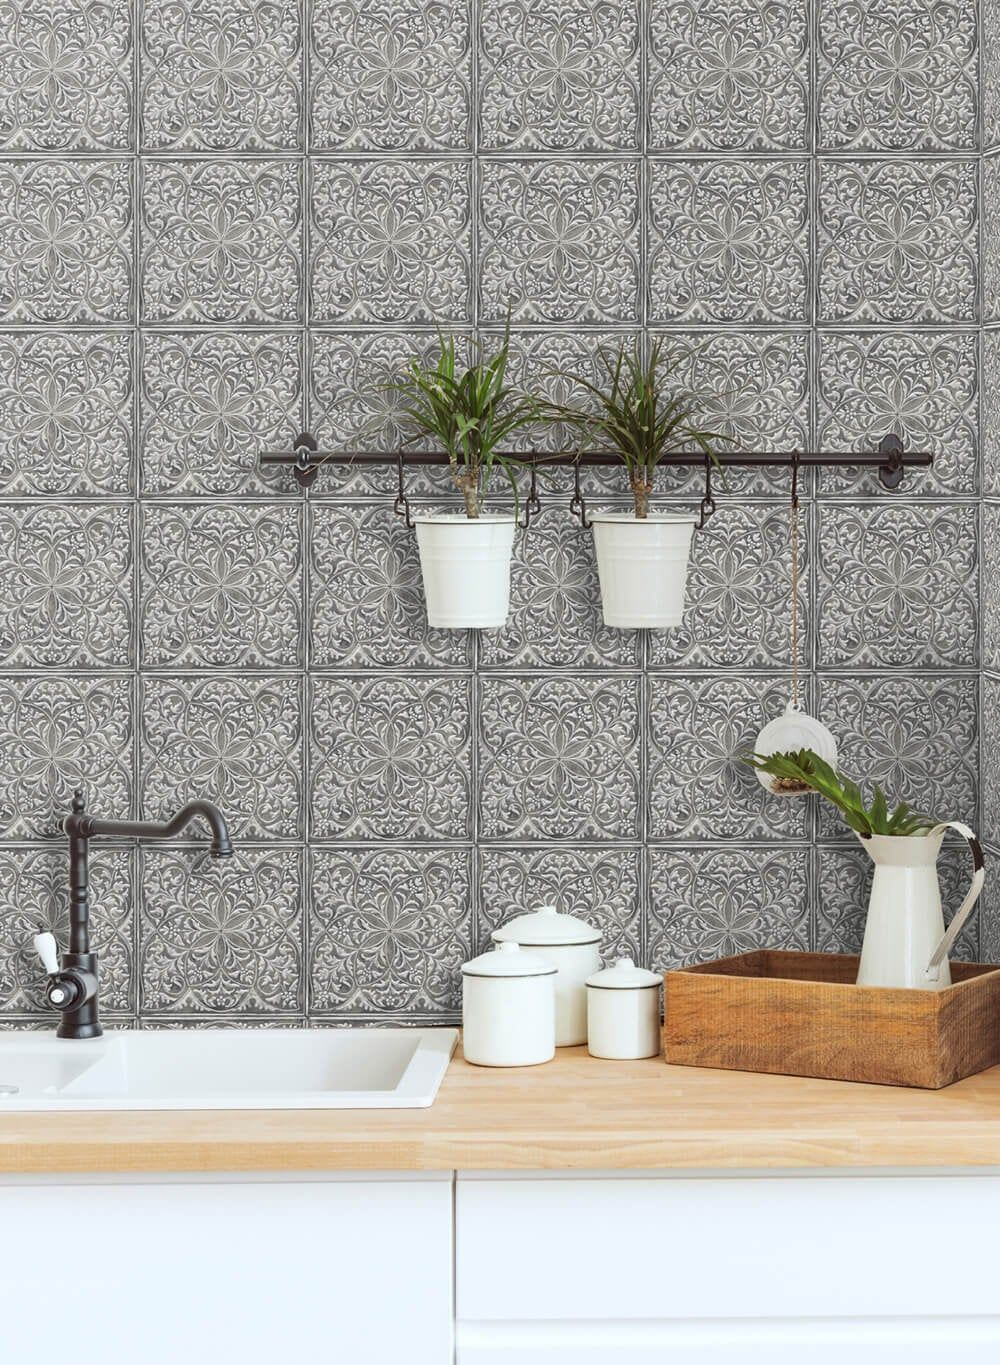 Peel And Stick Self Adhesive Wallpaper Wallpaper Peel Etsy Peel And Stick Wallpaper Stick On Tiles Peel And Stick Tile